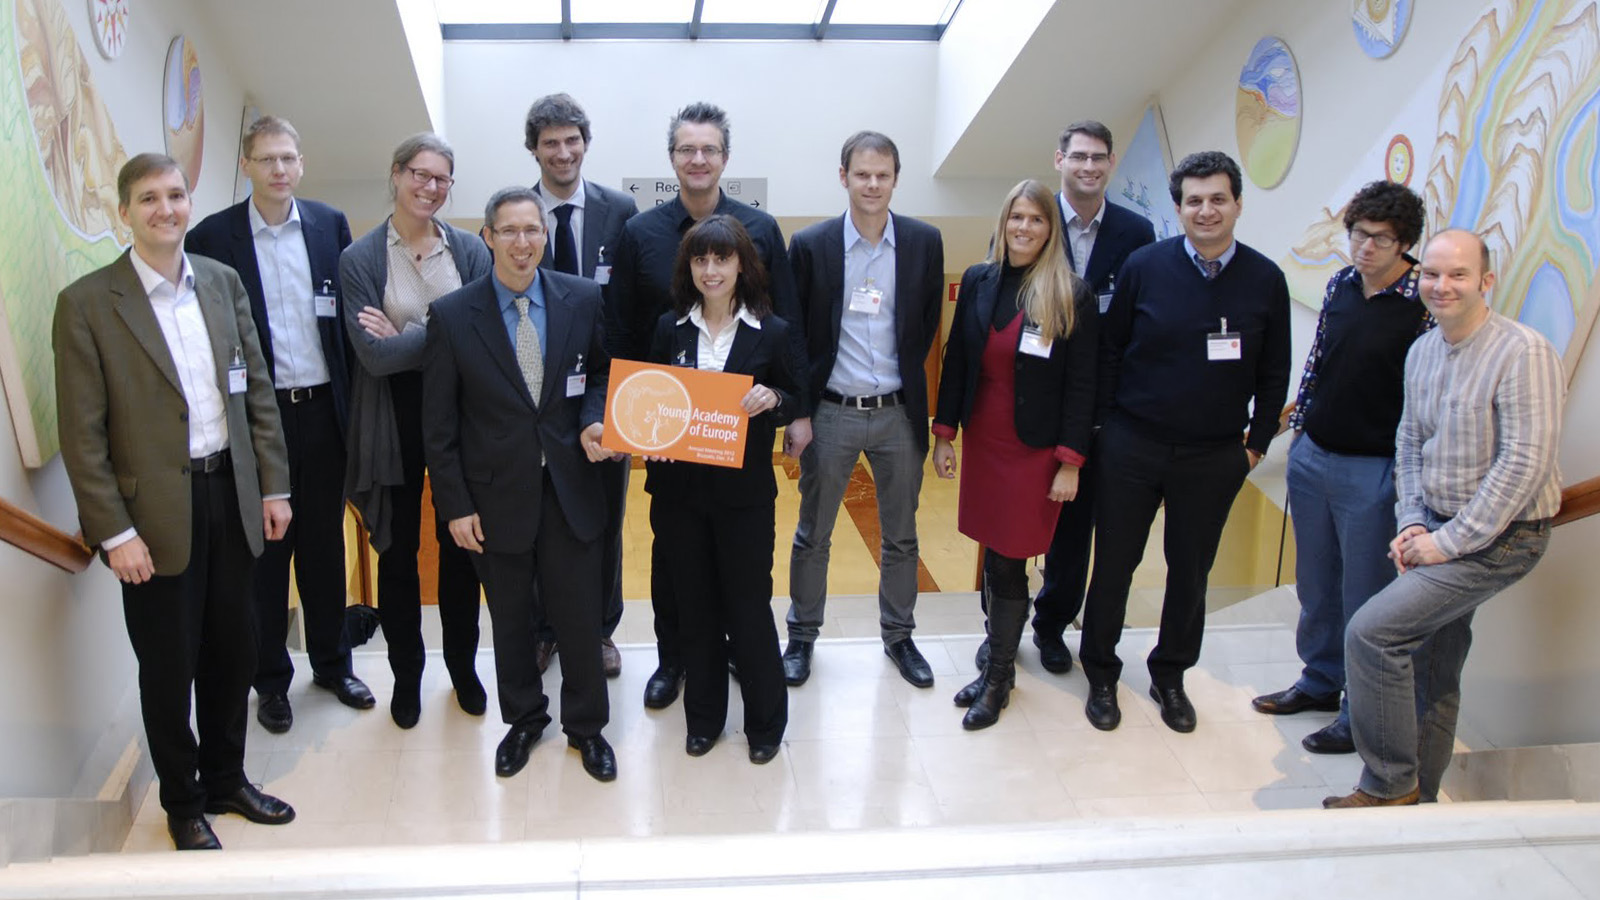 Members of the YAE Board at the constitutive meeting 2012 in Brussels